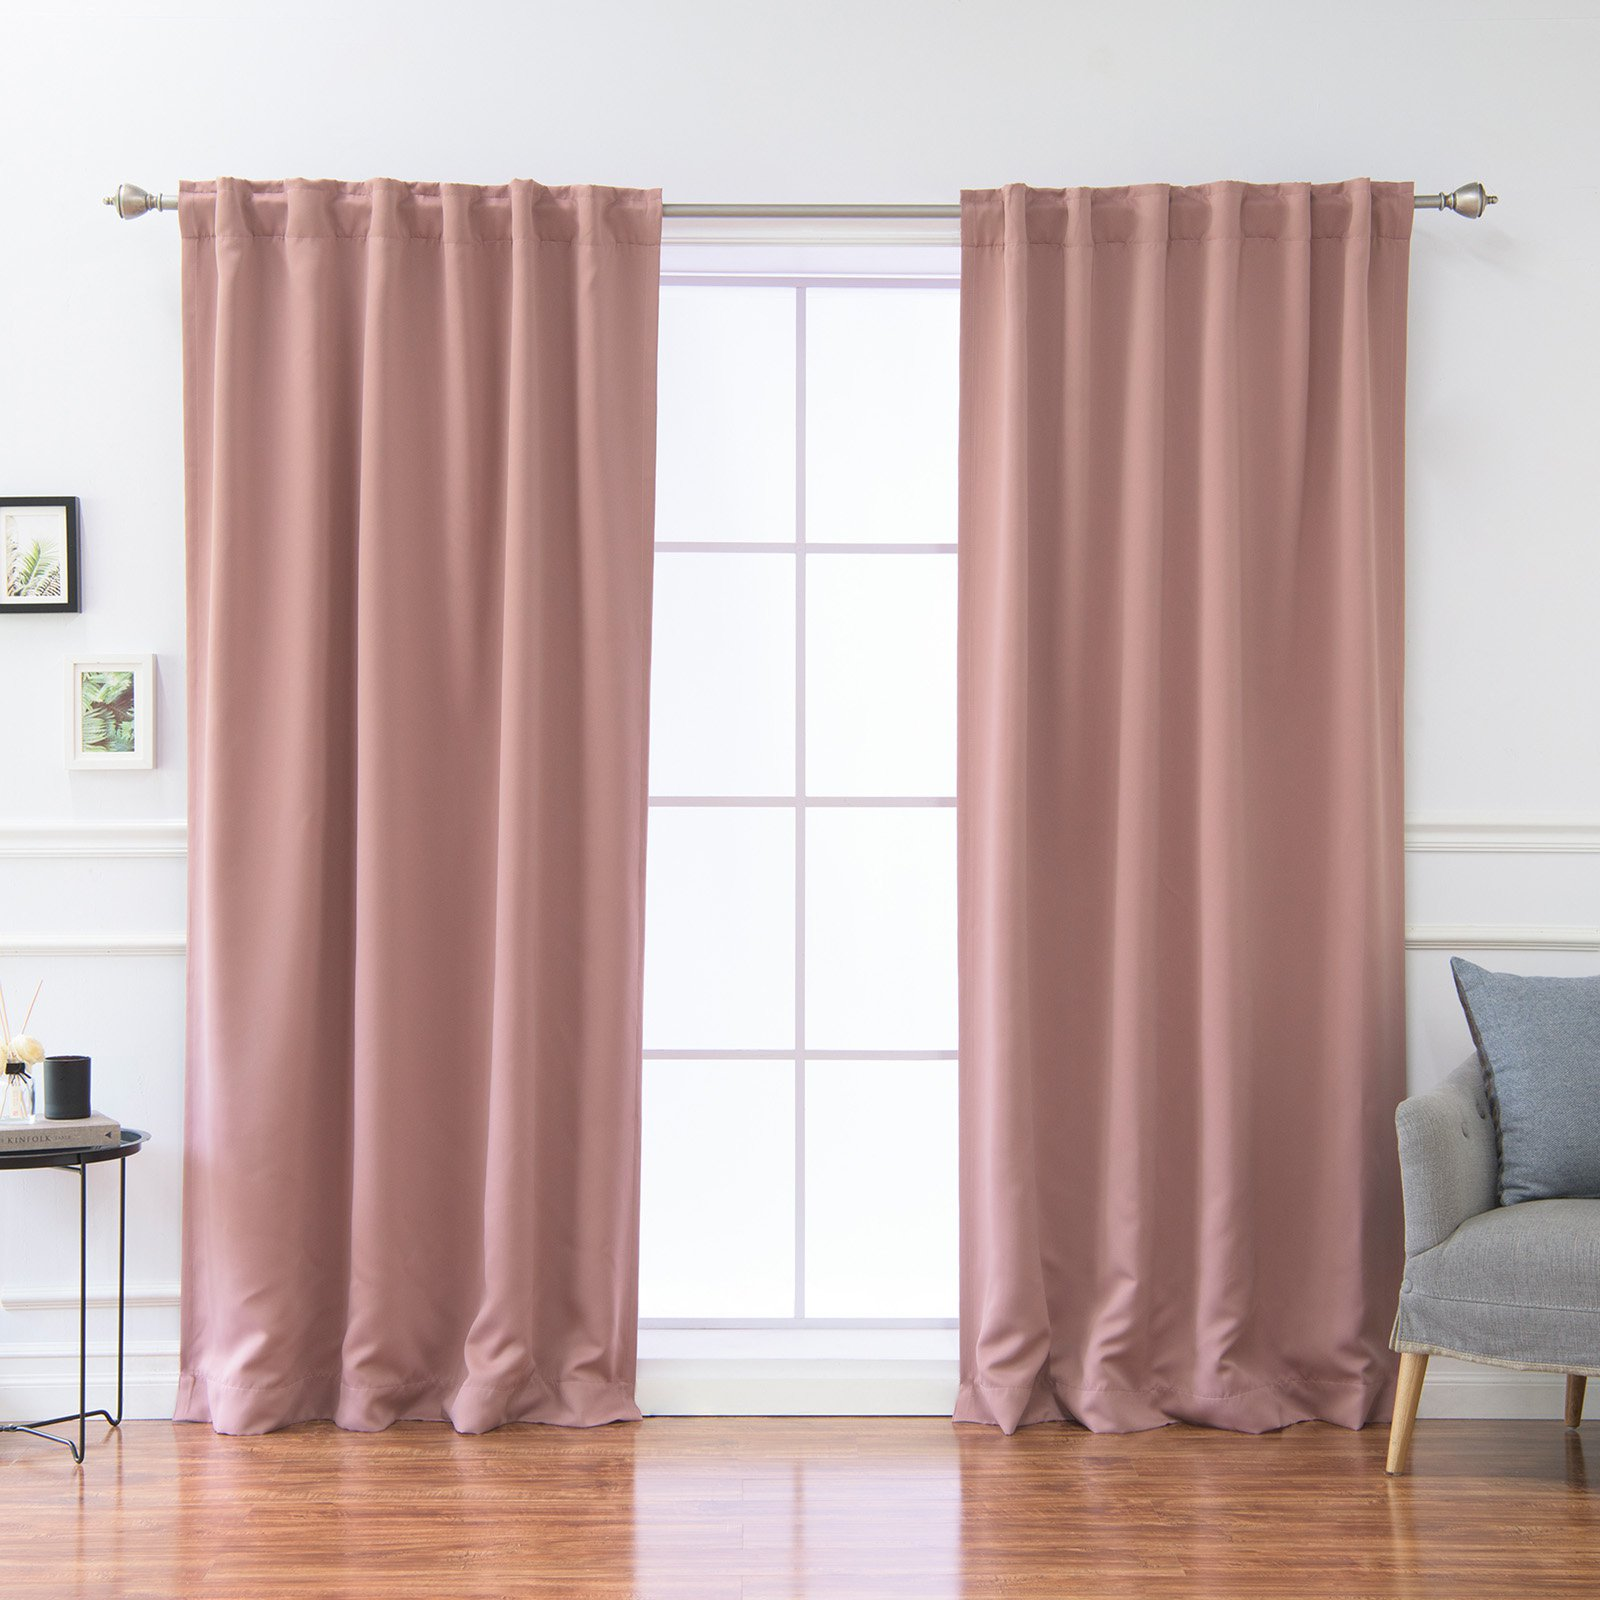 Best Home Fashion Blackout Curtain Panel With Images Insulated